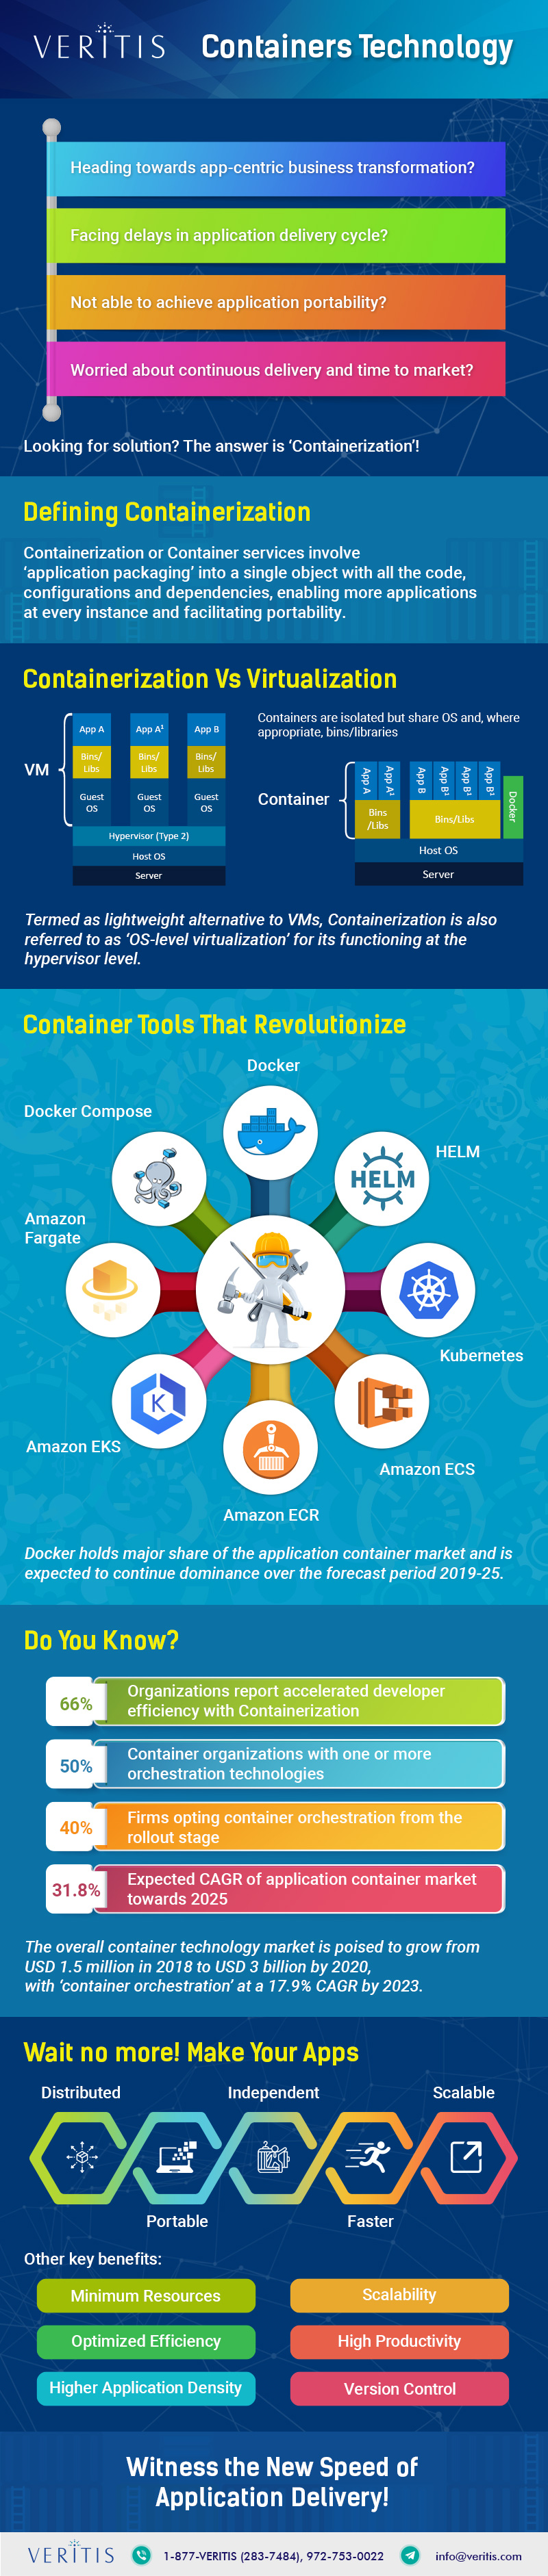 [Infographic] - Meet New App Speeds with Container Technology Services